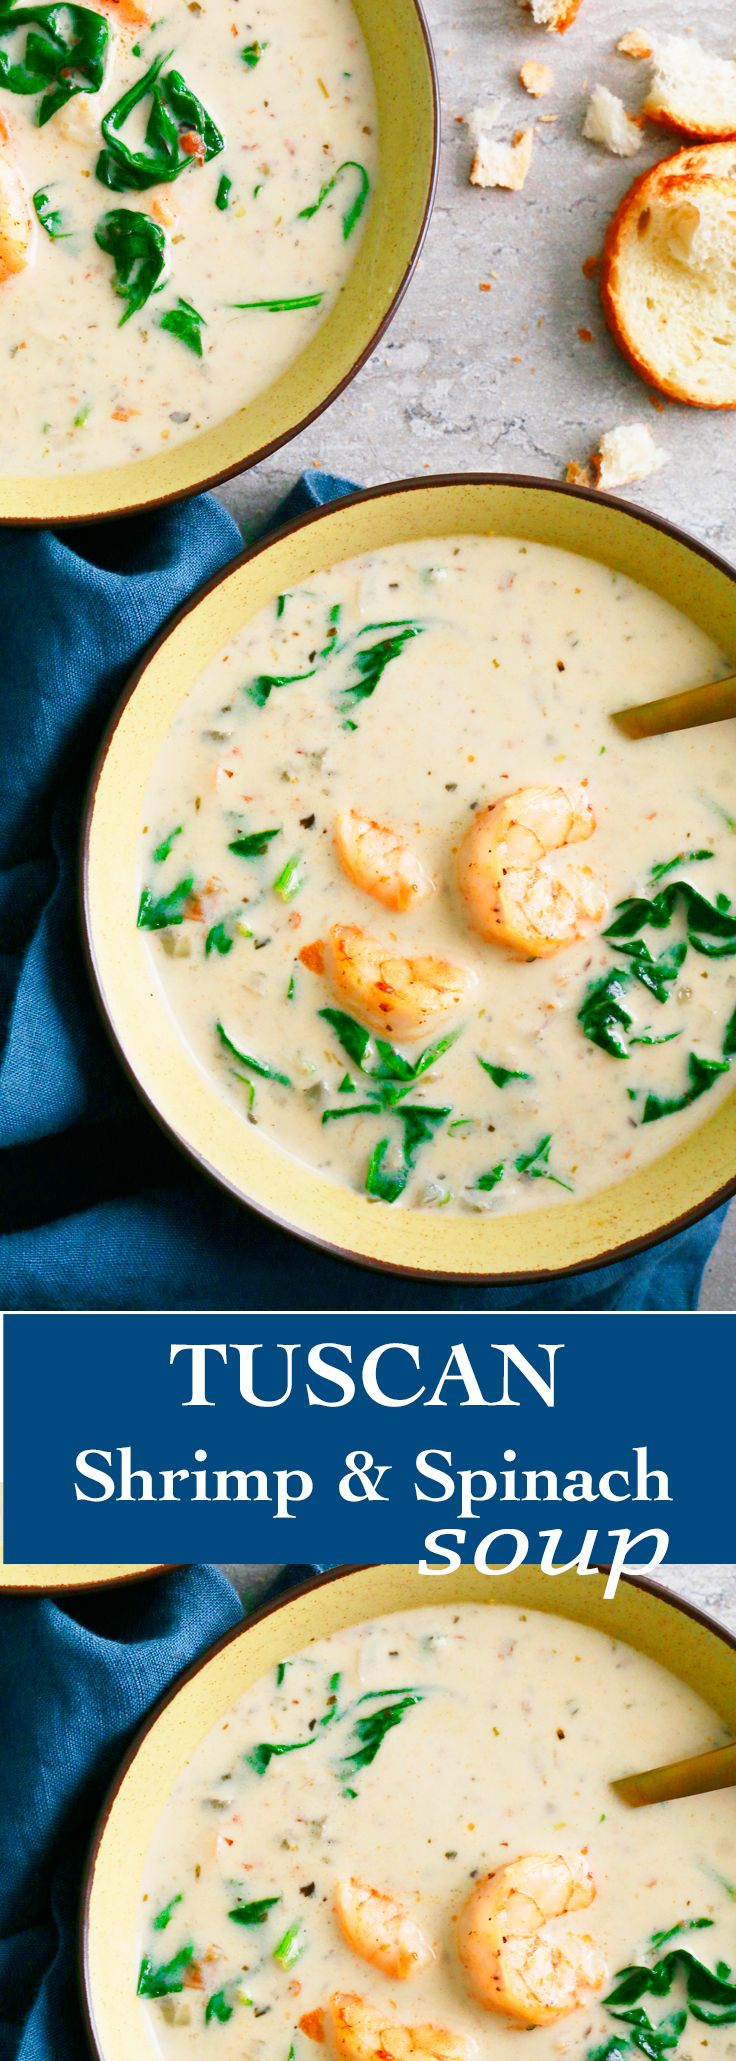 tuscan soup| quick shrimp soup |fall soup | spinach soup | easy shrimp soup | italian shrimp soup | creamy shrimp soup